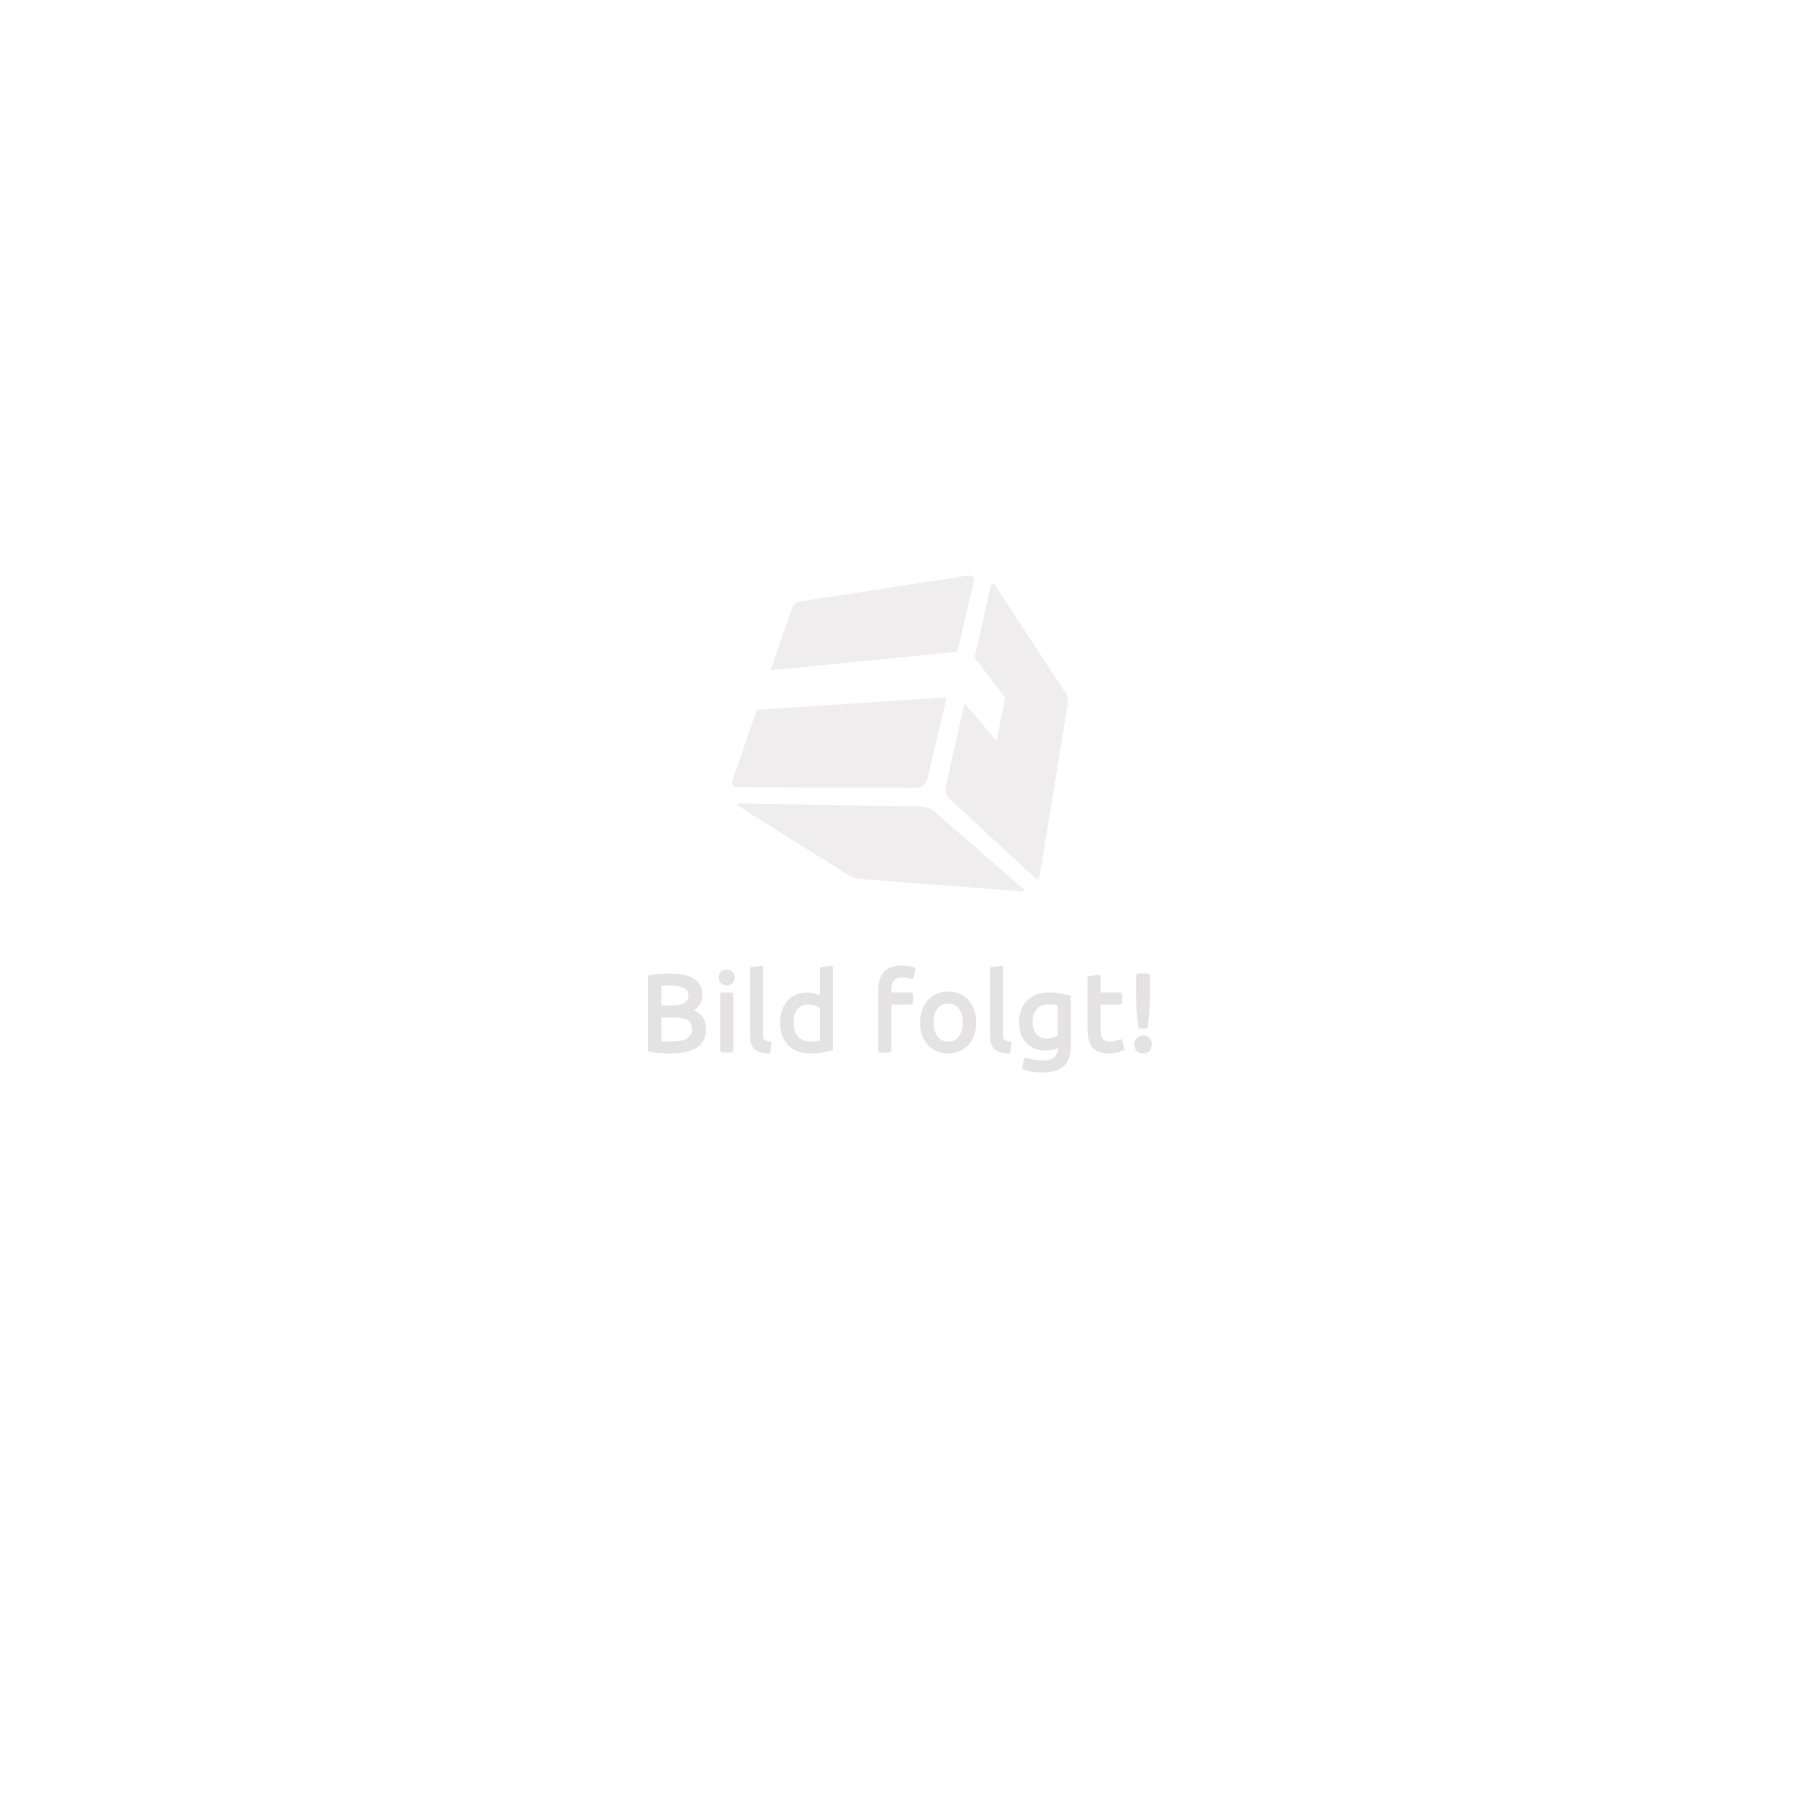 Crate rack for 3 beverage crates